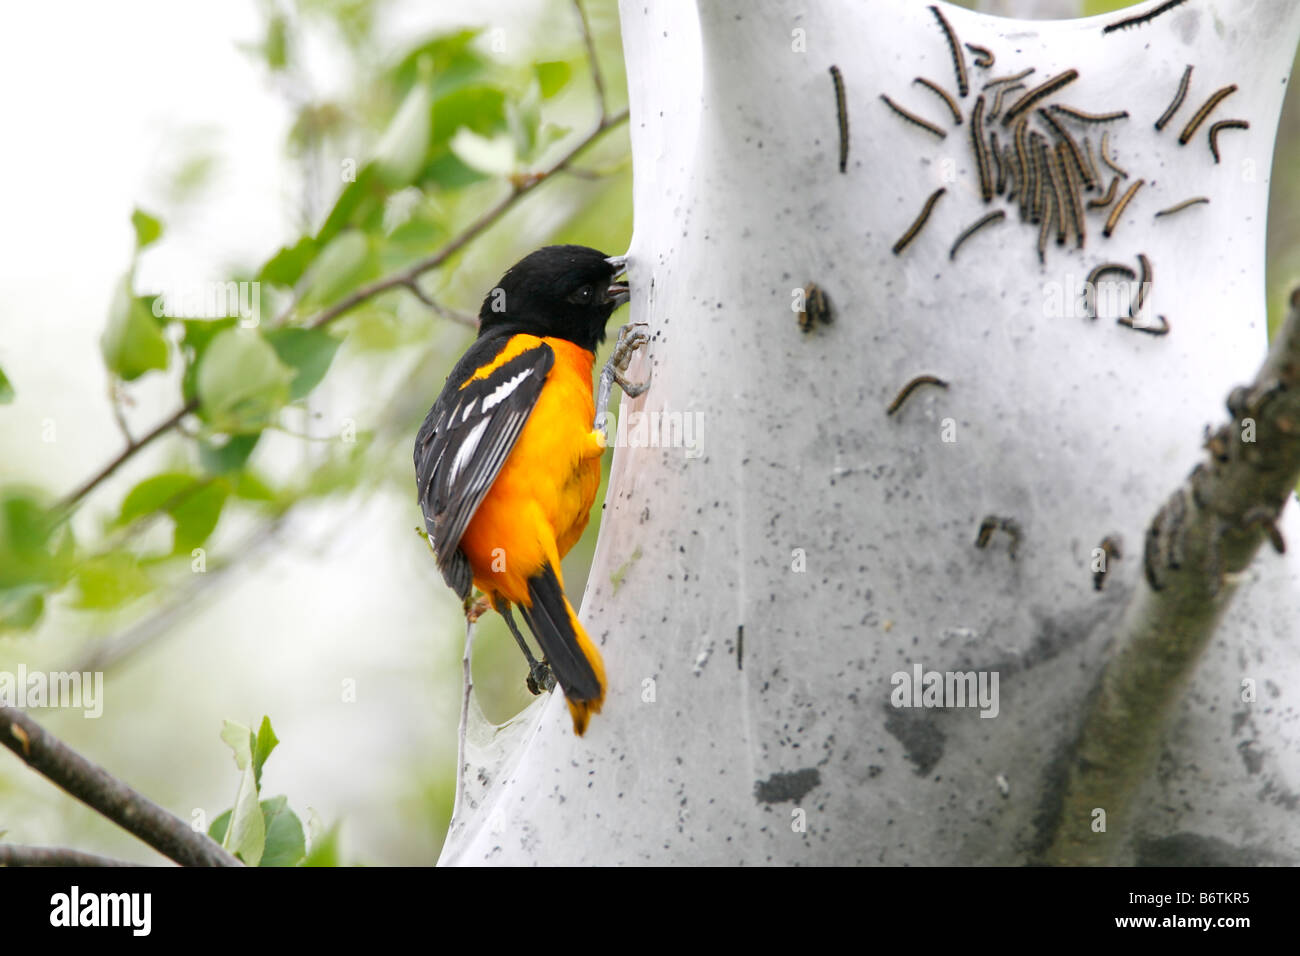 Baltimore Oriole Eating Tent Caterpillars - Stock Image